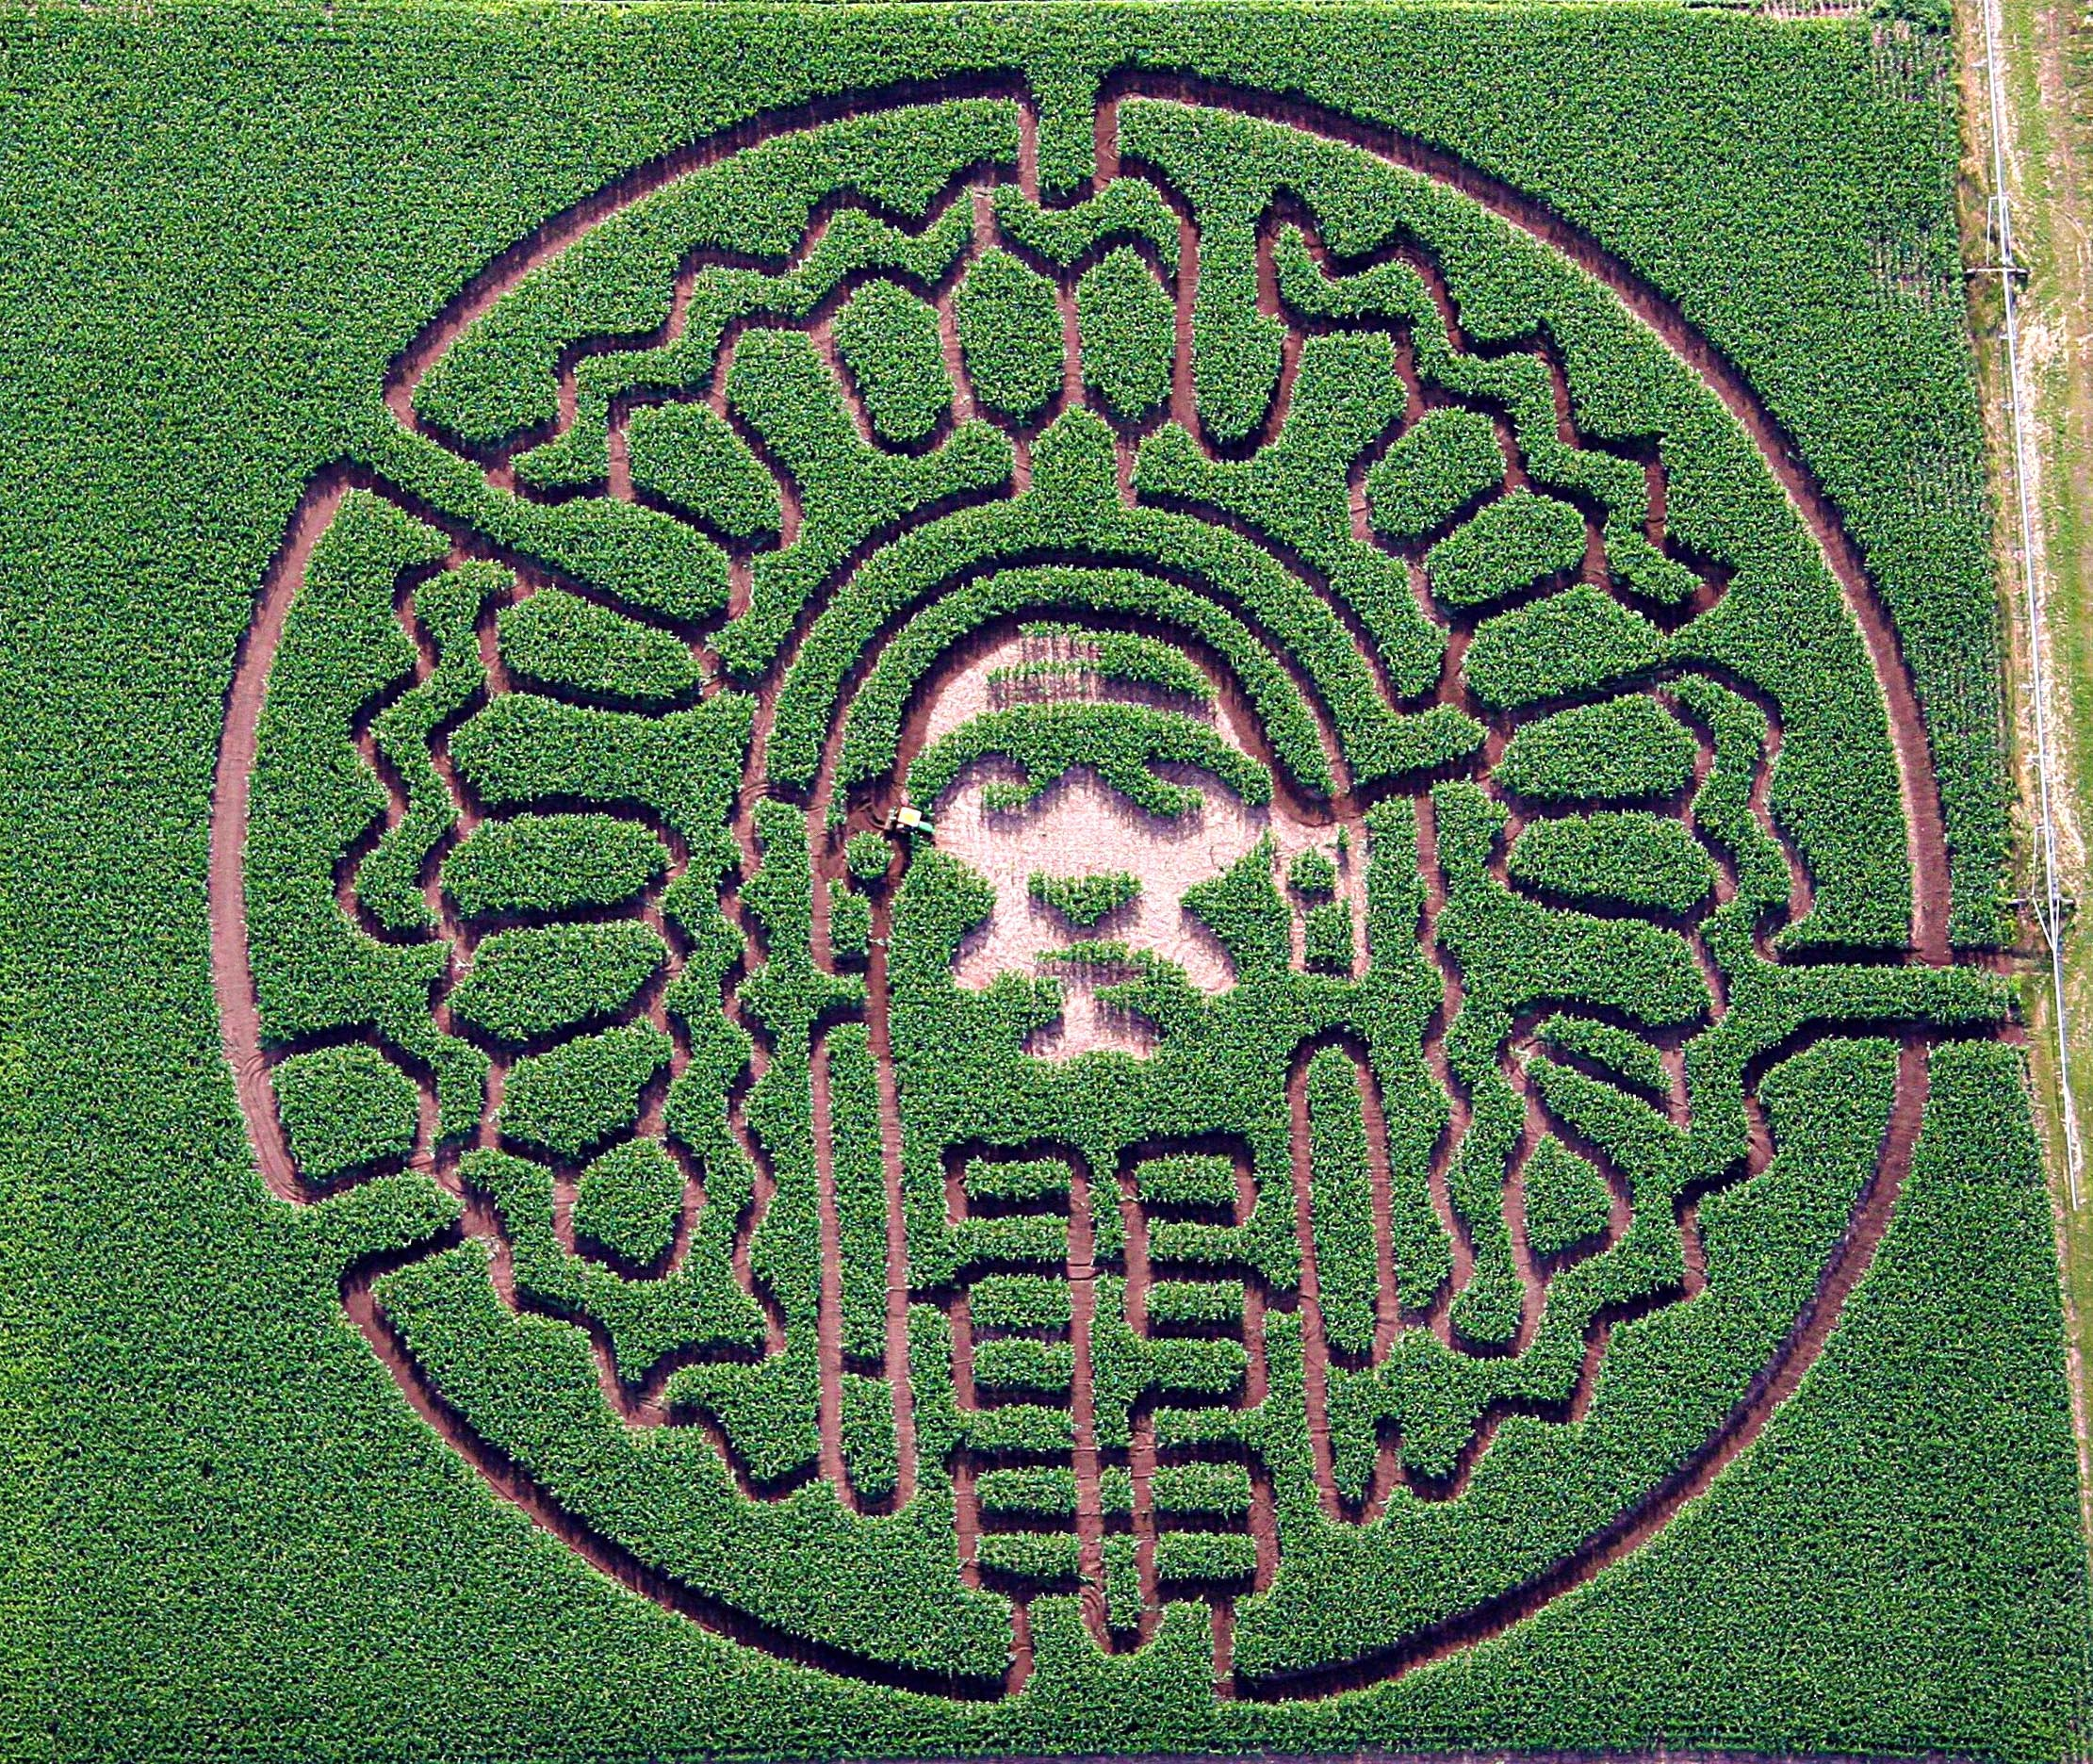 2007 5-Acre Corn Maze - University of Illinois, Chief Illiniwek